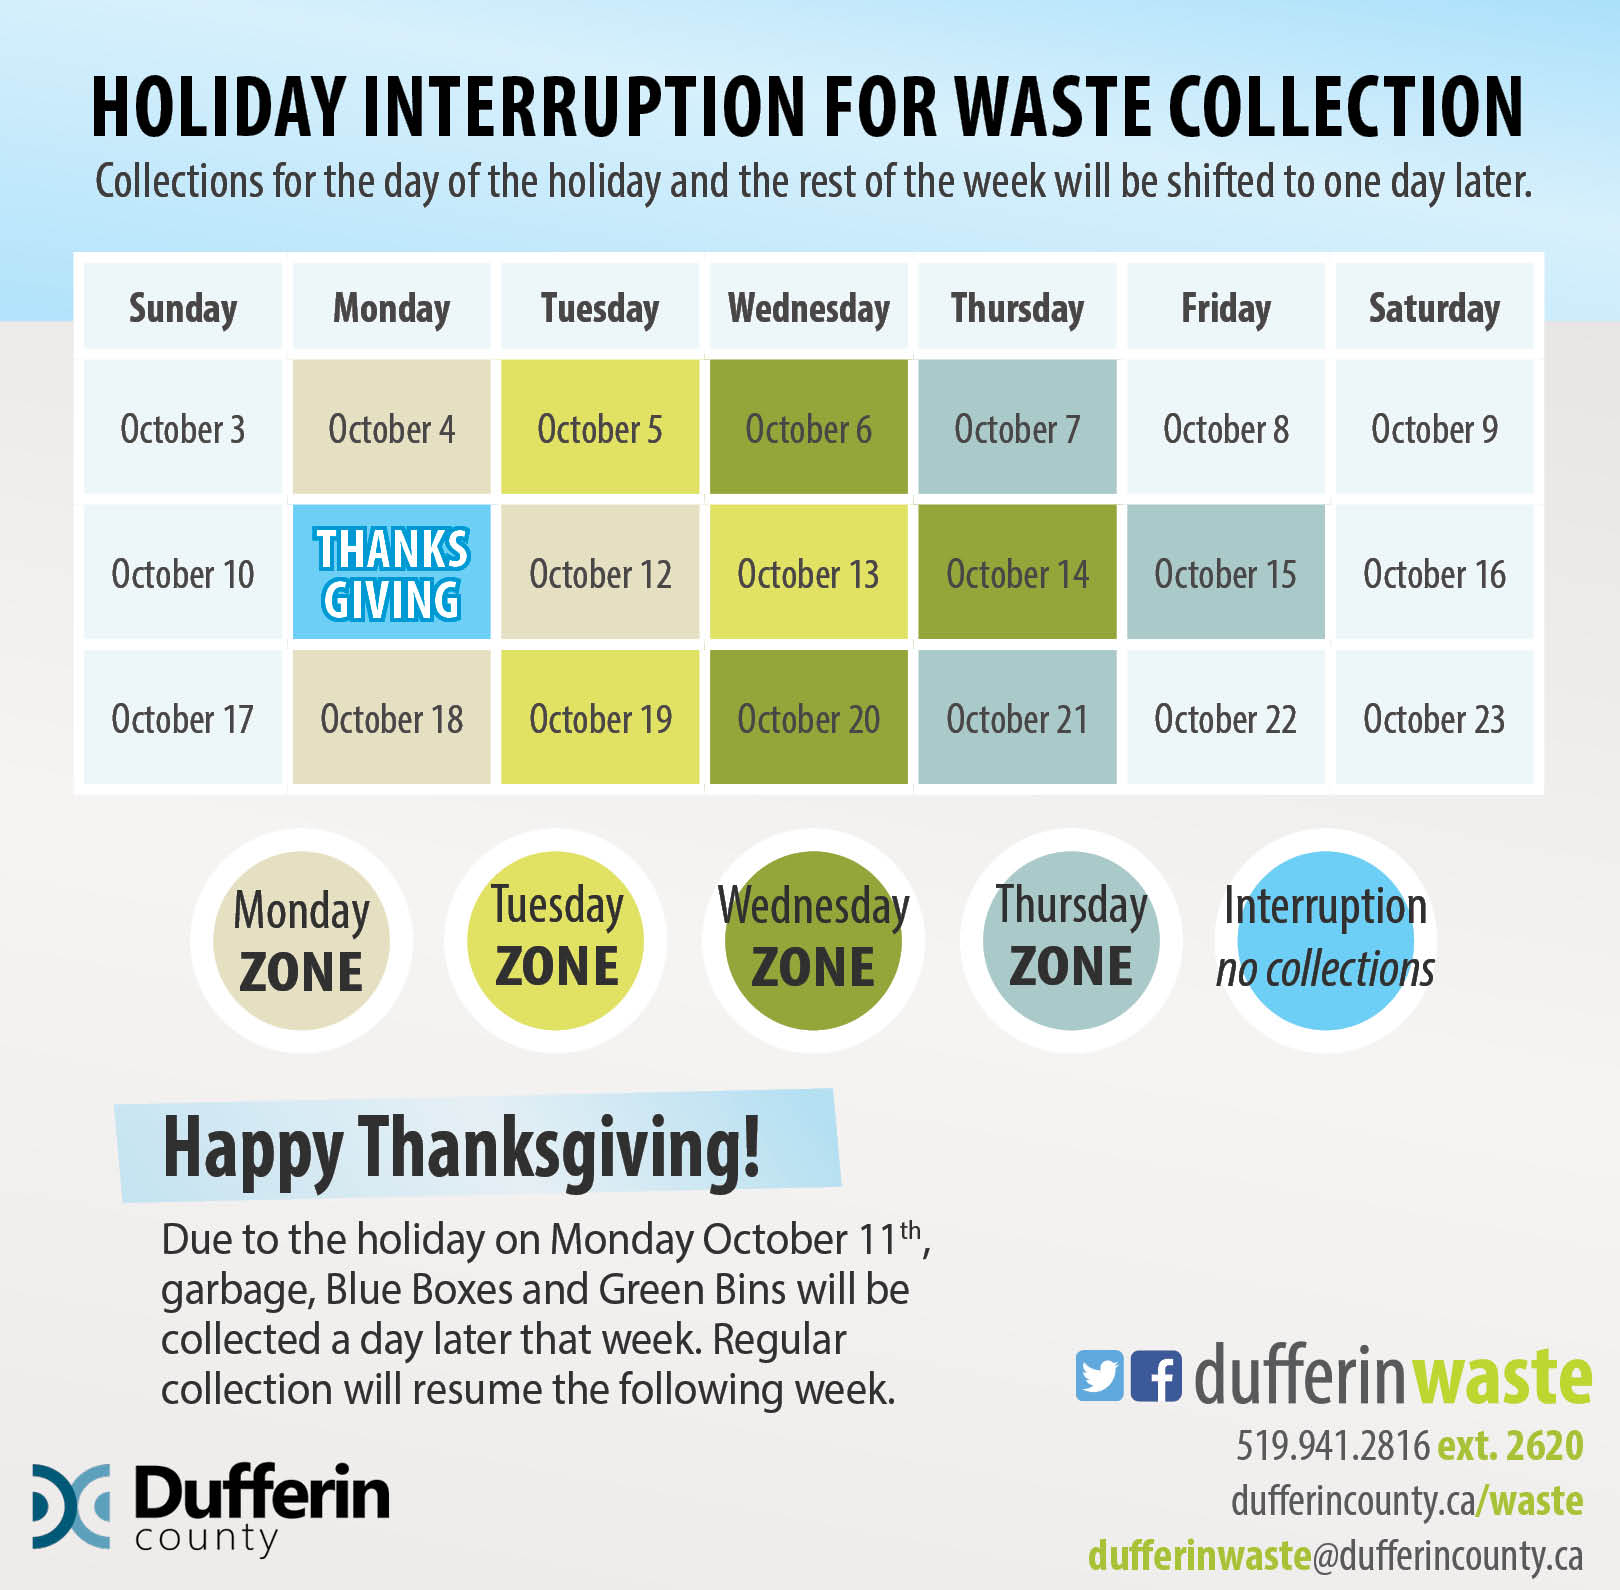 Holiday interruption for waste collection schedule showing waste collected a day later for Thanksgiving.